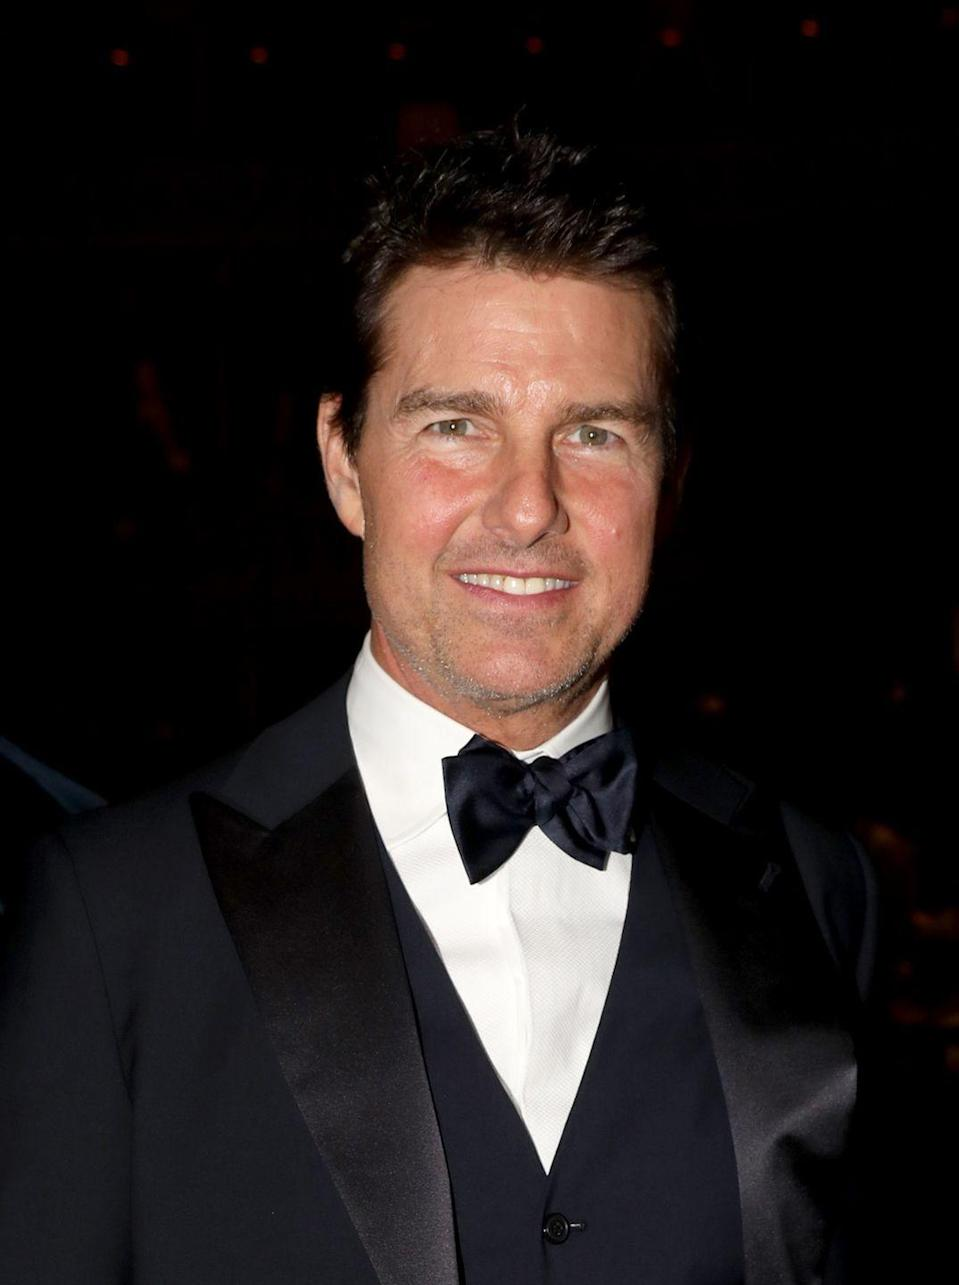 <p>Today, it sometimes feels like Cruise is known more for his association with Scientology than his acting career. Although he hasn't starred in any huge movies recently, he did reprise his role as Ethan Hunt in the sixth film in his franchise,<em> Mission: Impossible - Fallout</em>. </p>